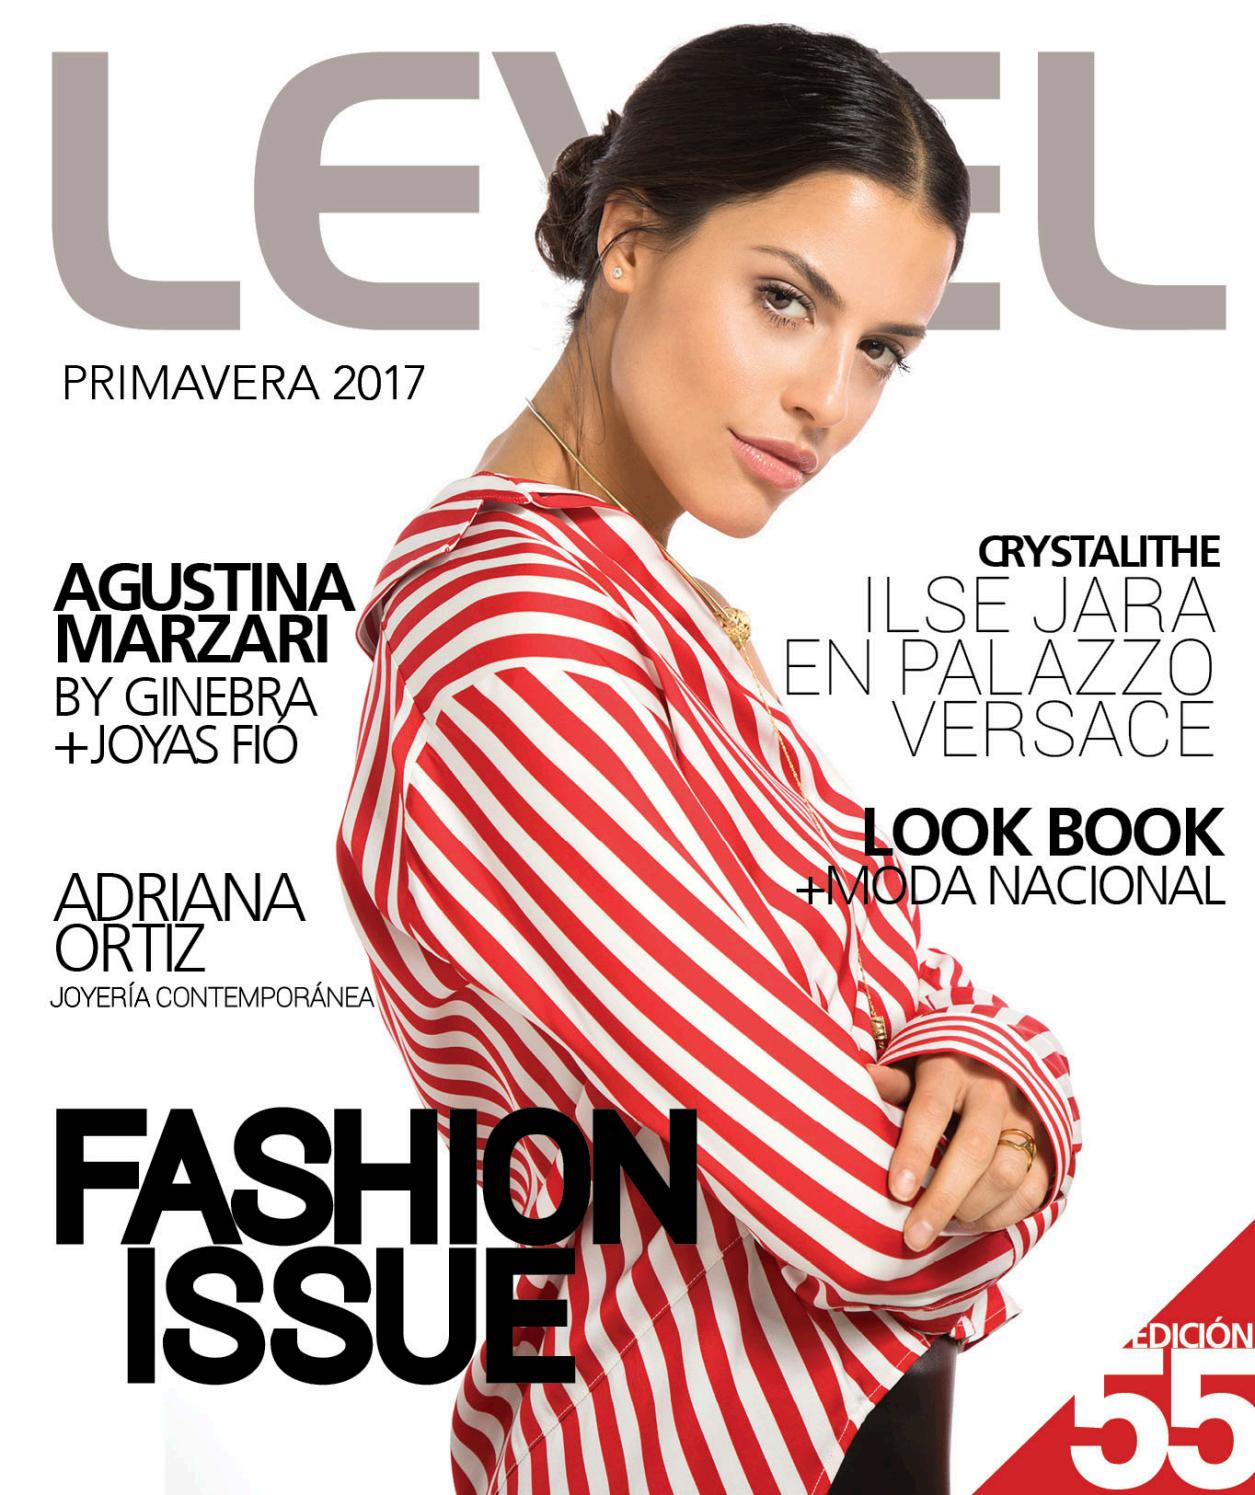 55 The Fashion Issue by Revista Level - issuu